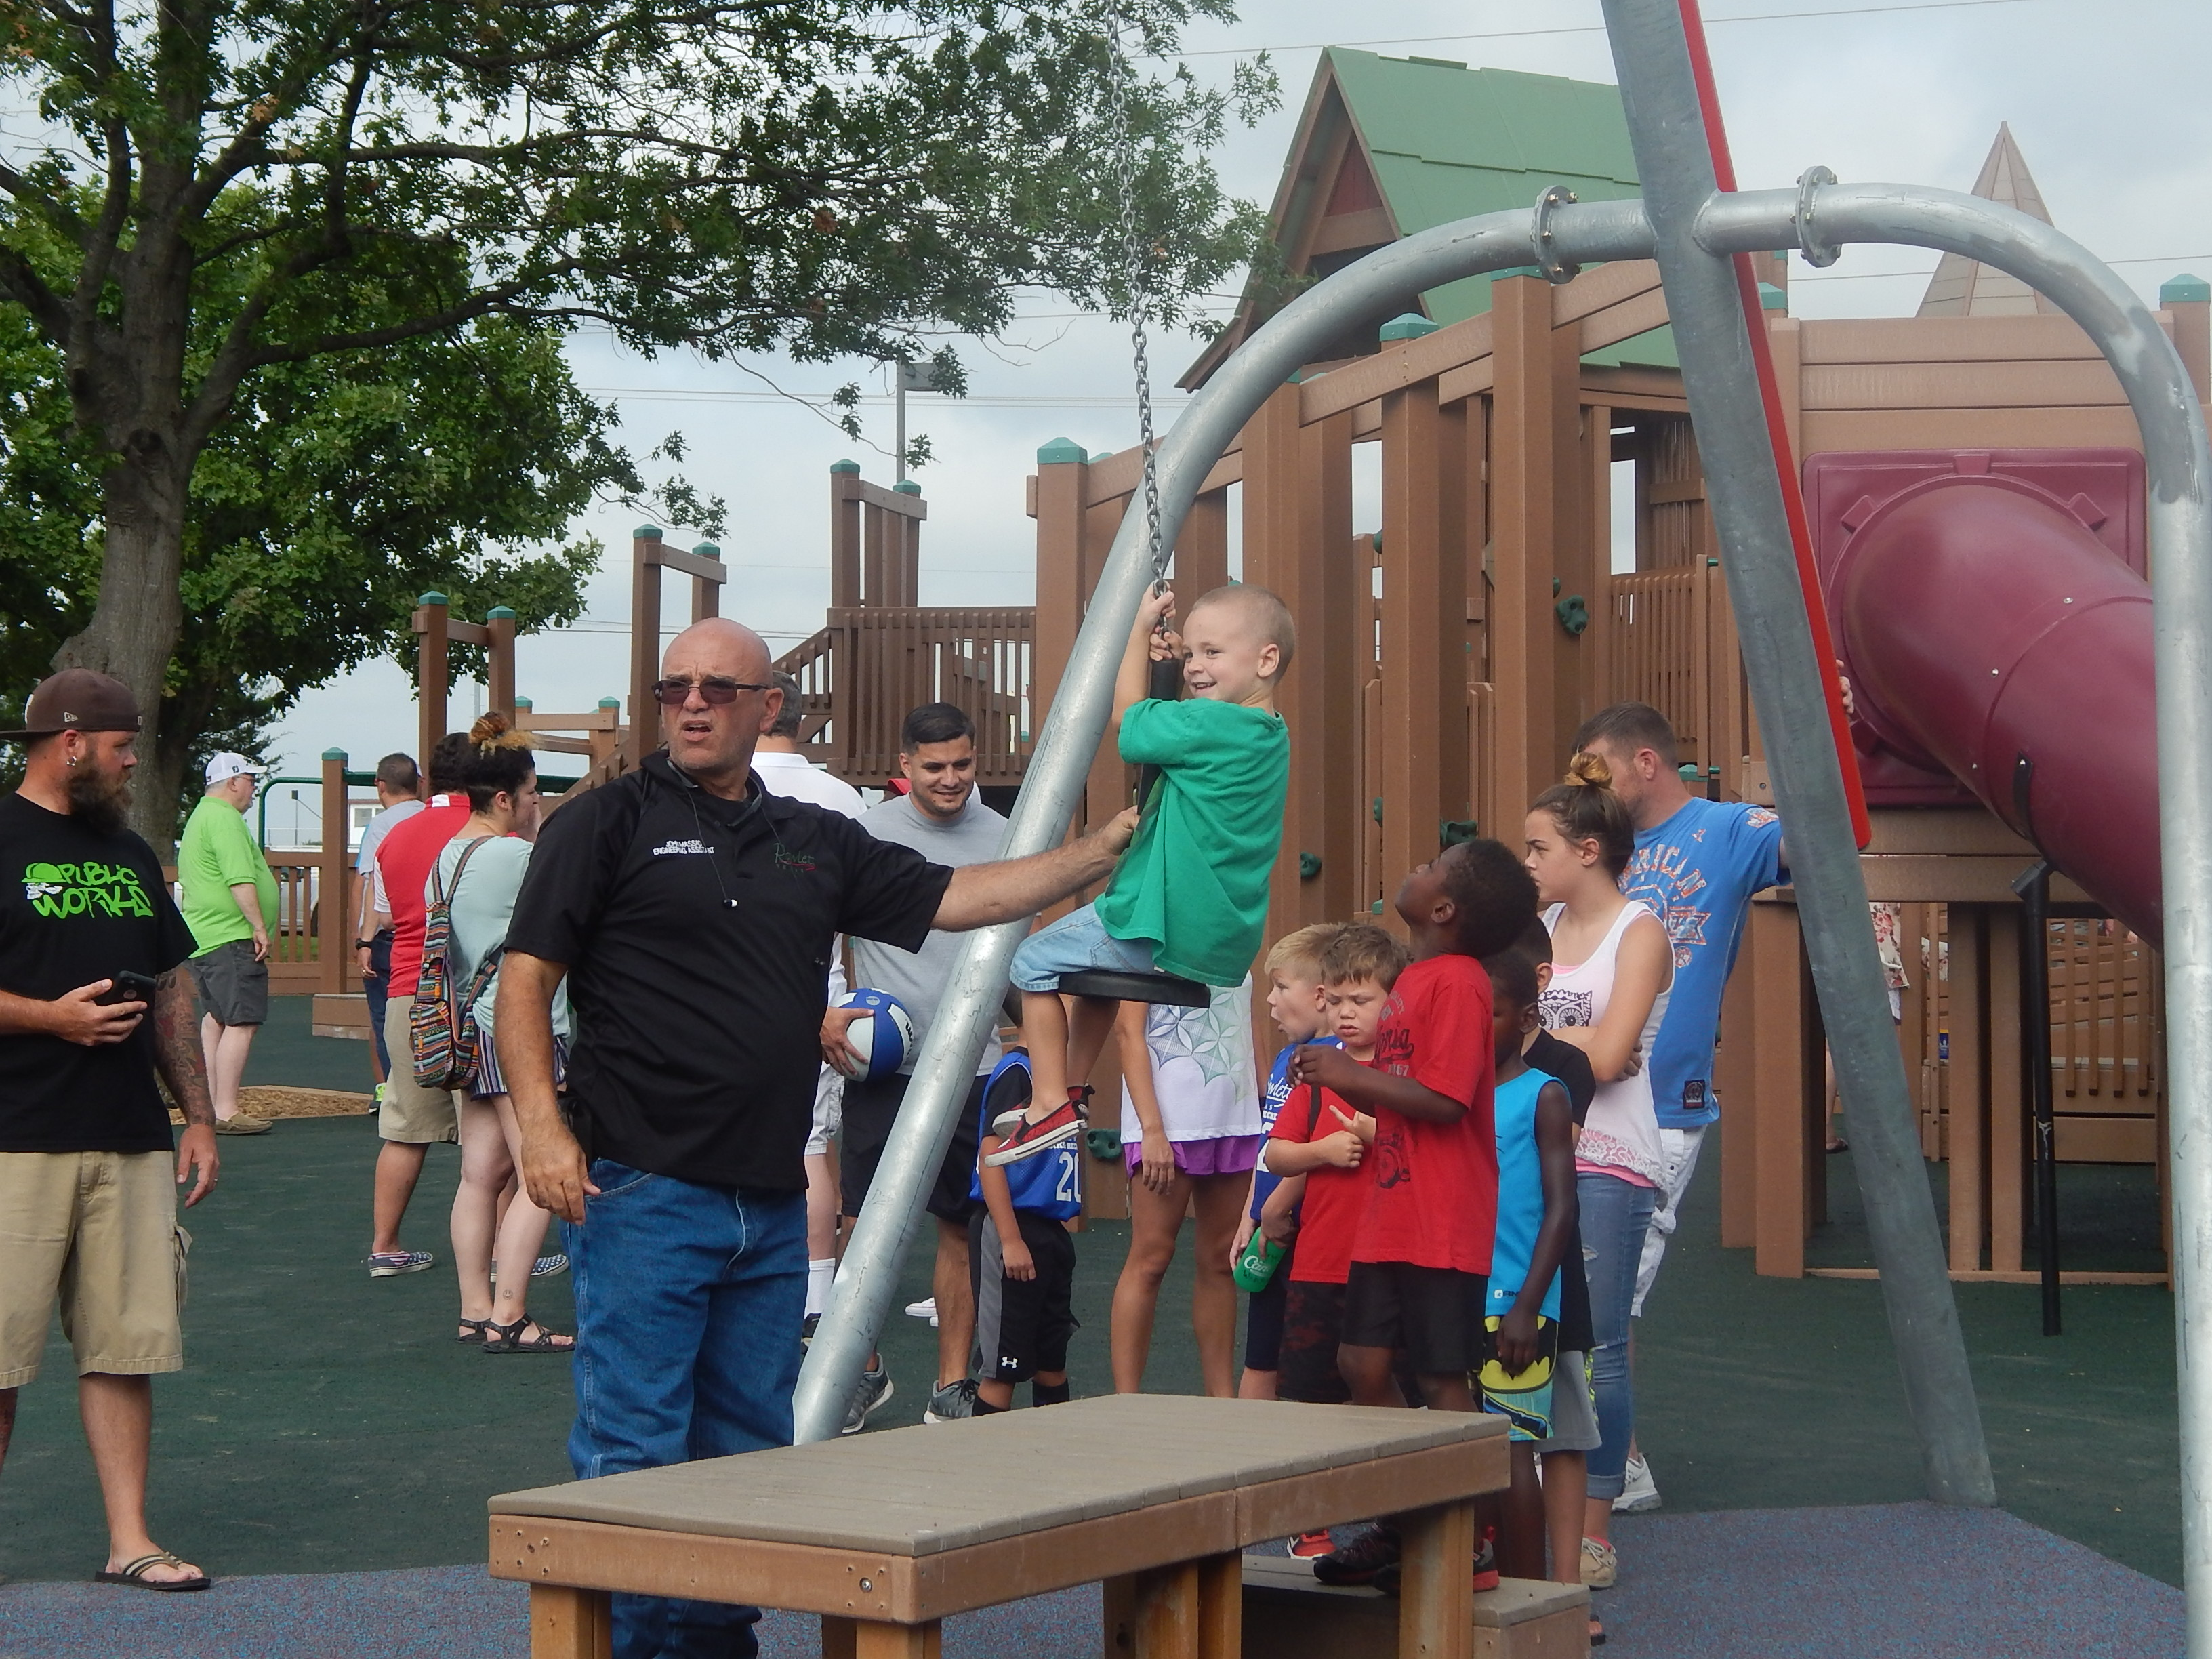 Adult hold child on swing zip line in playground